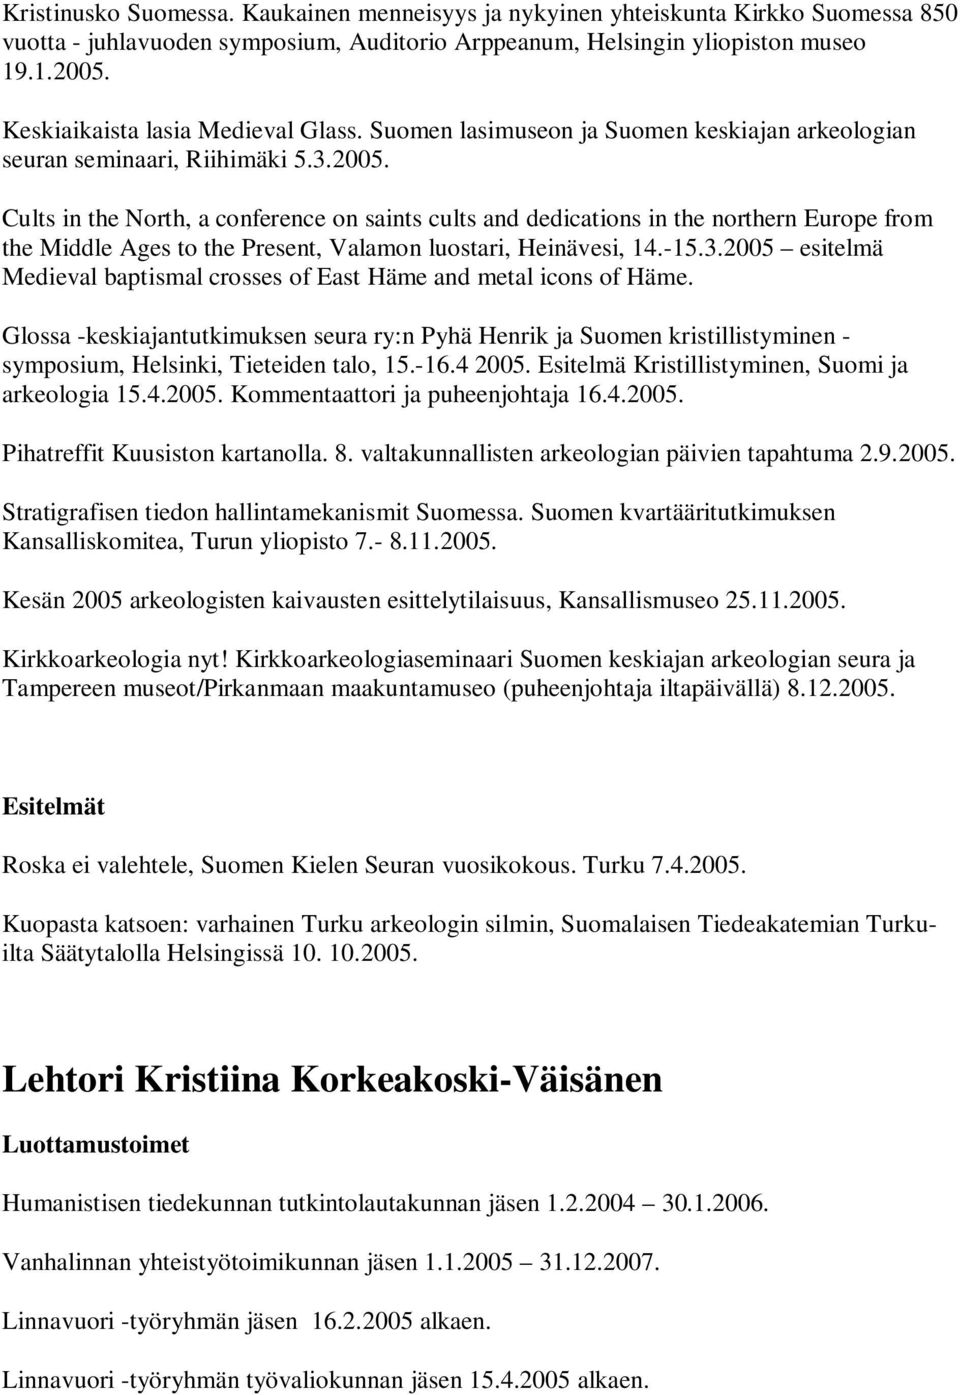 Cults in the North, a conference on saints cults and dedications in the northern Europe from the Middle Ages to the Present, Valamon luostari, Heinävesi, 14.-15.3.